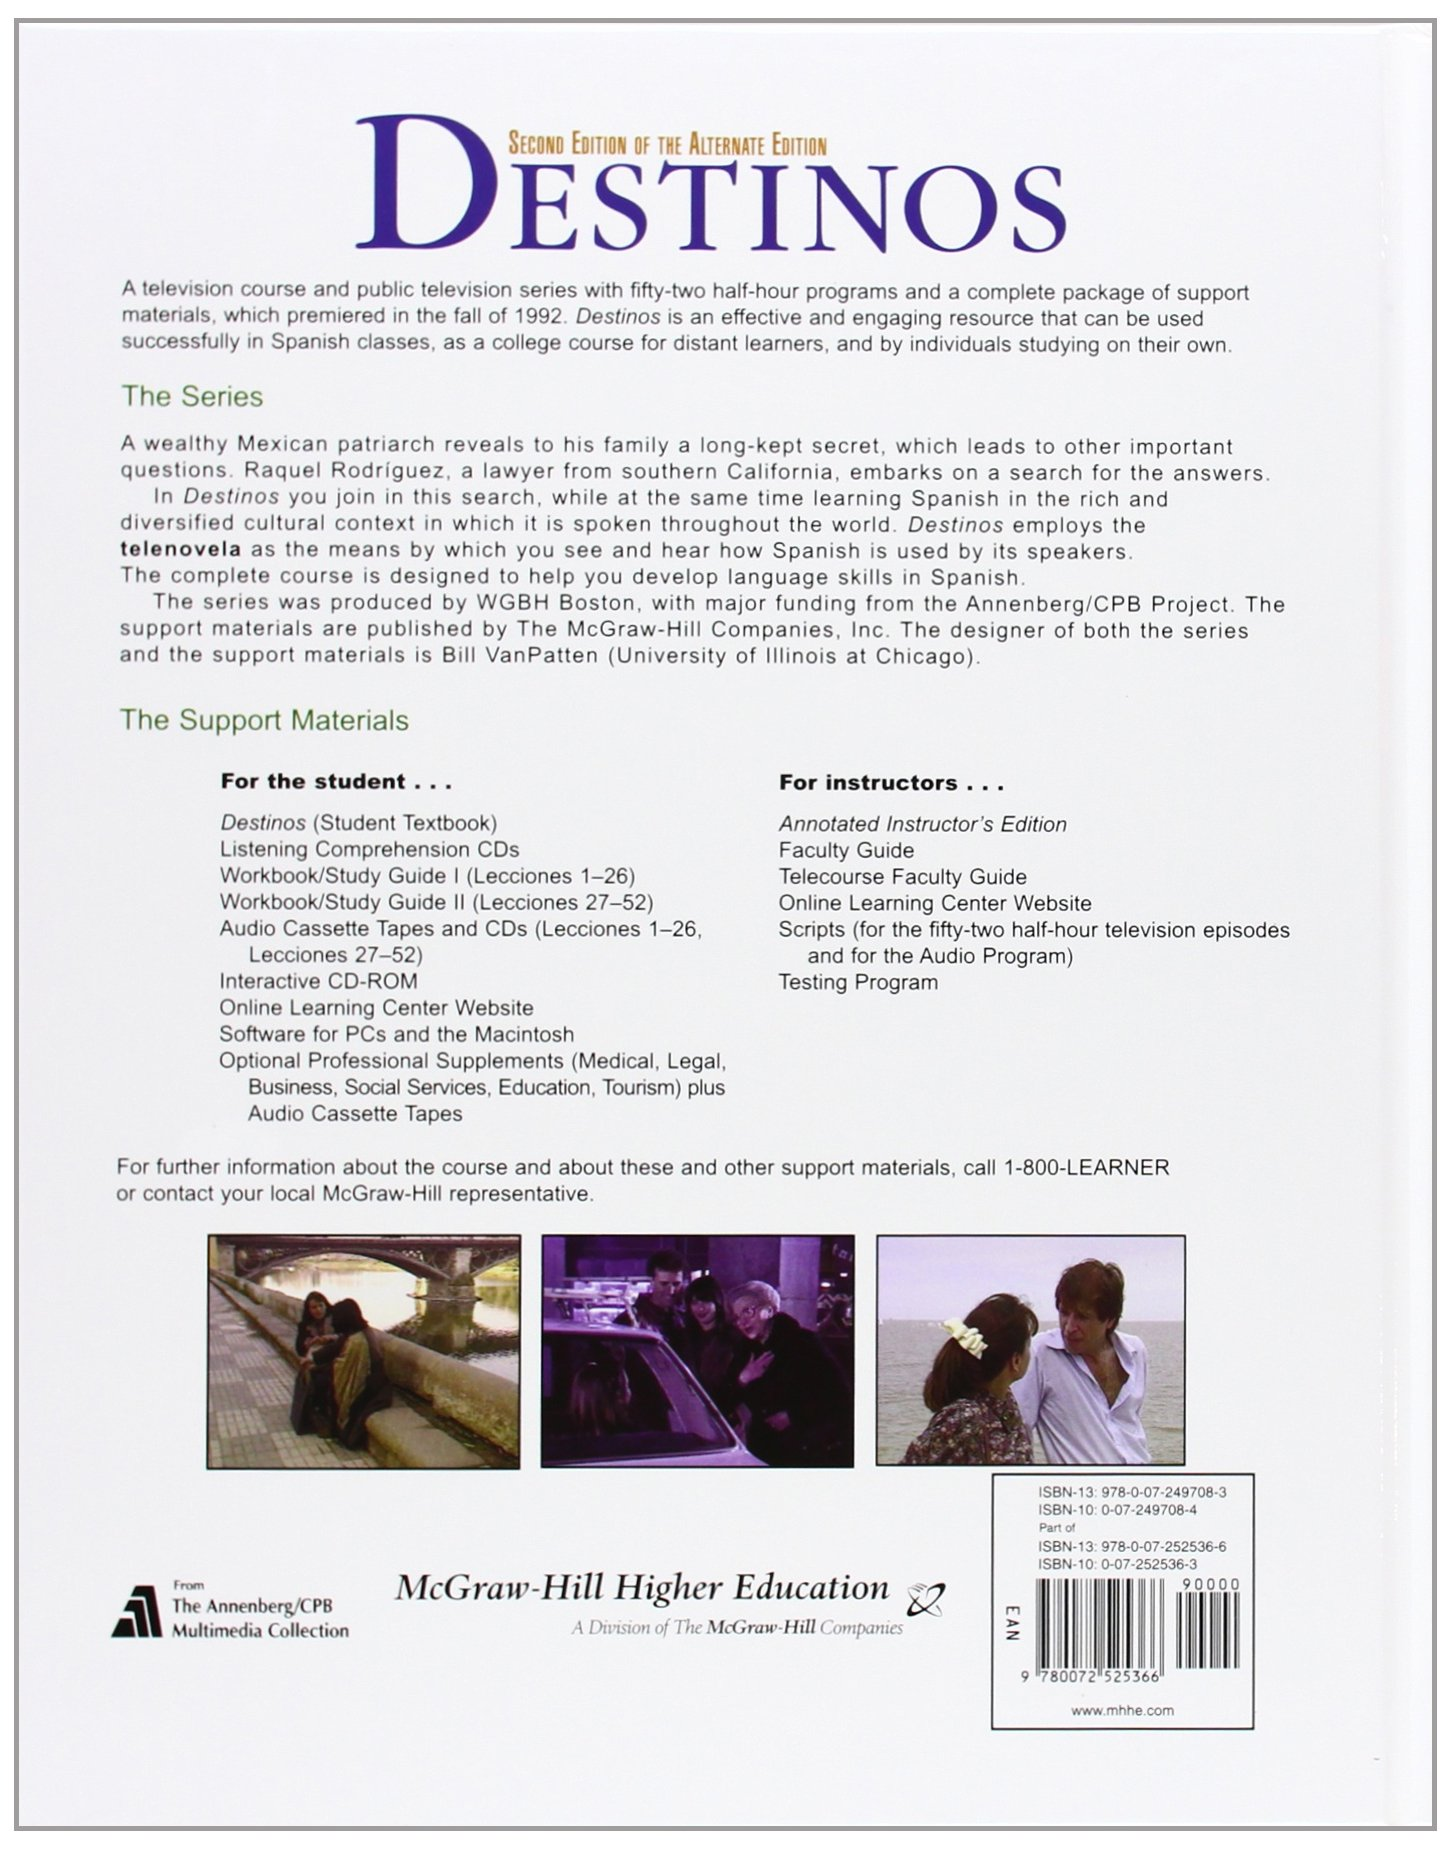 Worksheets Destinos Worksheet Answers destinos student edition wlistening comprehension audio cd bill vanpatten martha alford marks richard v teschner 9780072525